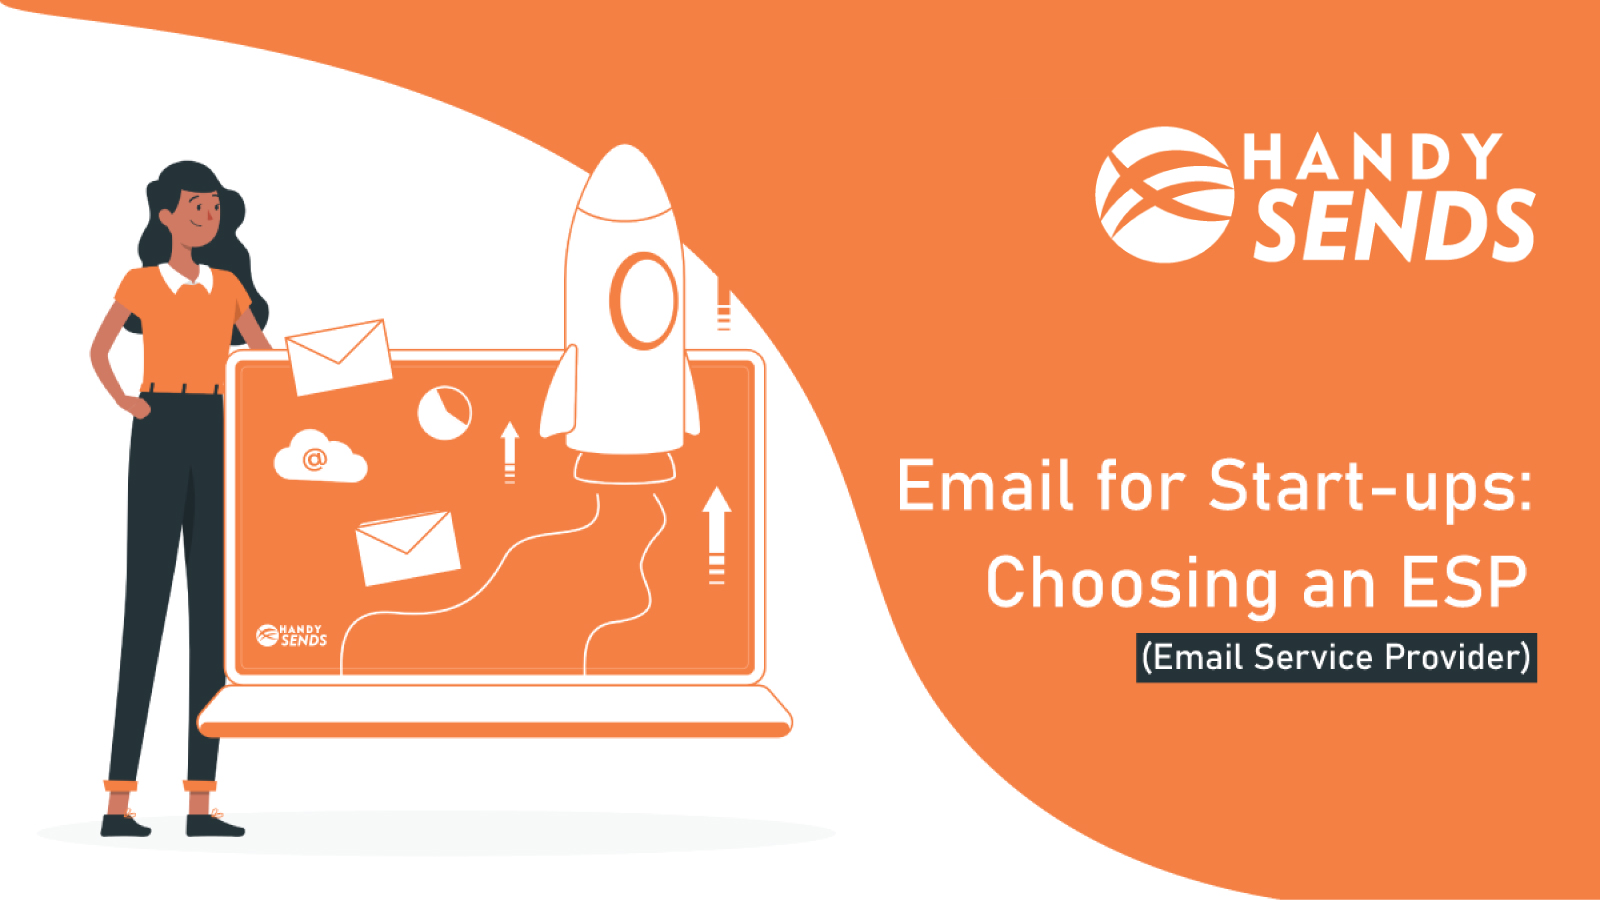 Email for Start-ups: Choosing an ESP (Email Service Provider)